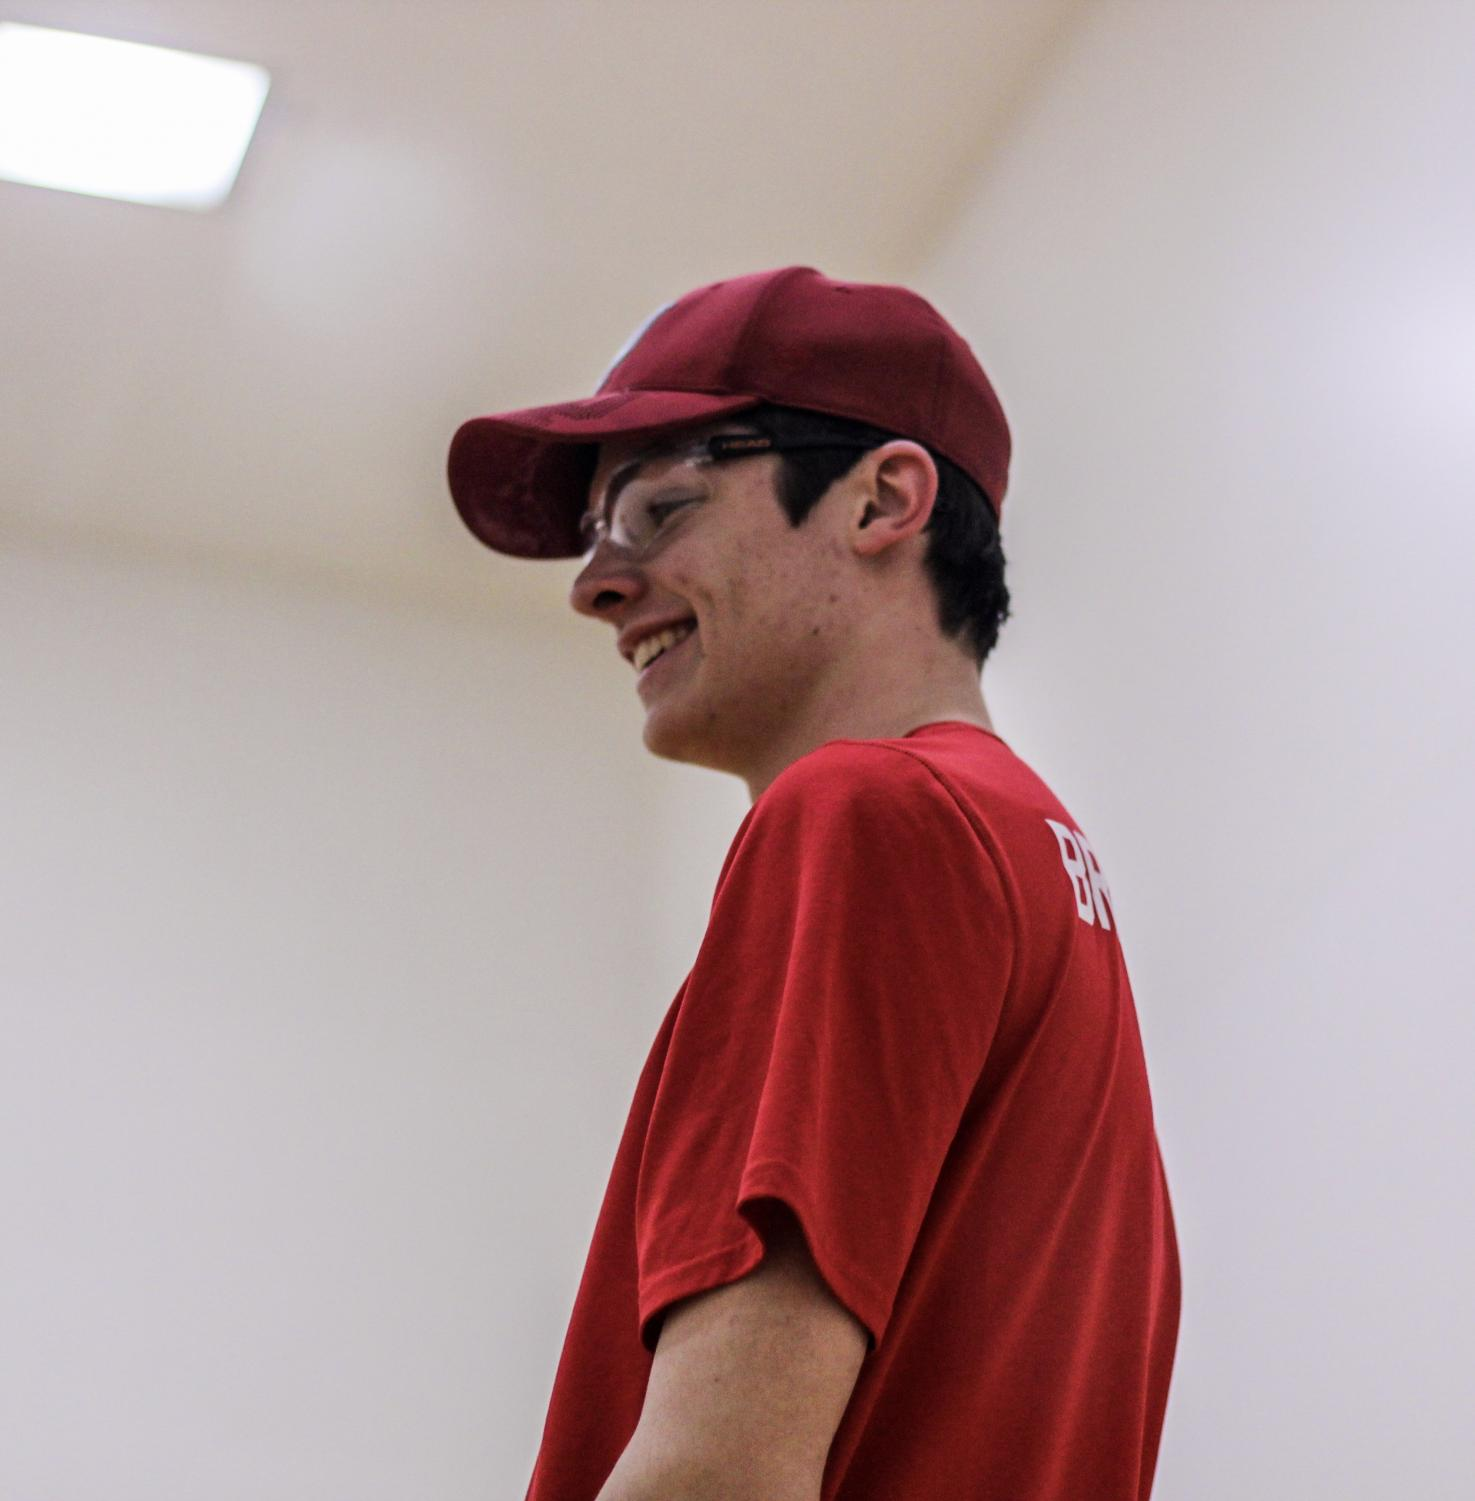 Smiling+between+serves%2C+Grant+Branstetter%2C+senior%2C+competes+in+a+racquetball+tournament+Feb.+20.